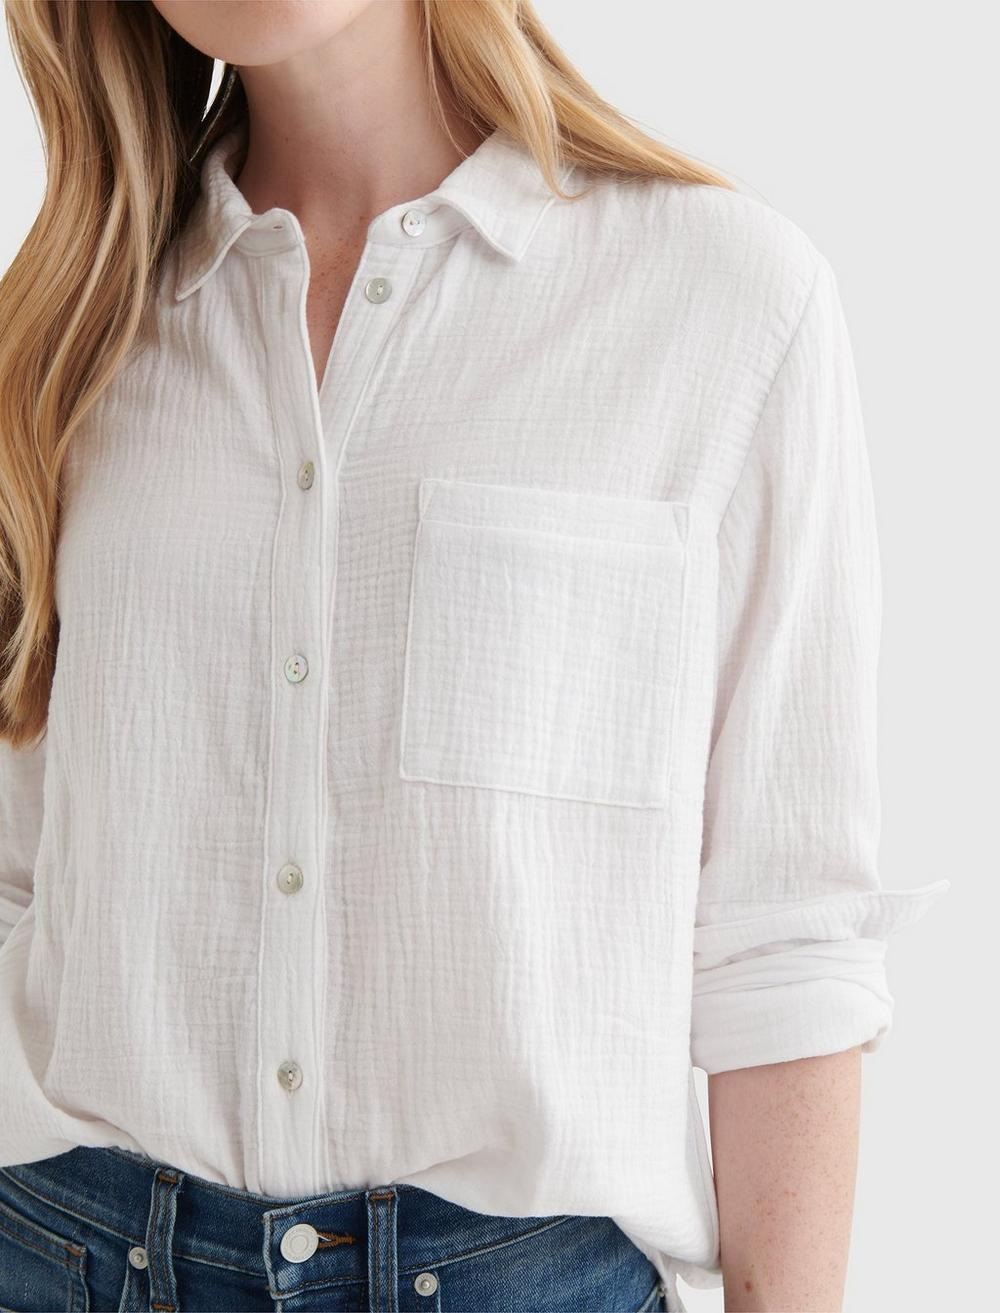 RELAXED-FIT POCKET WOVEN SHIRT, image 5